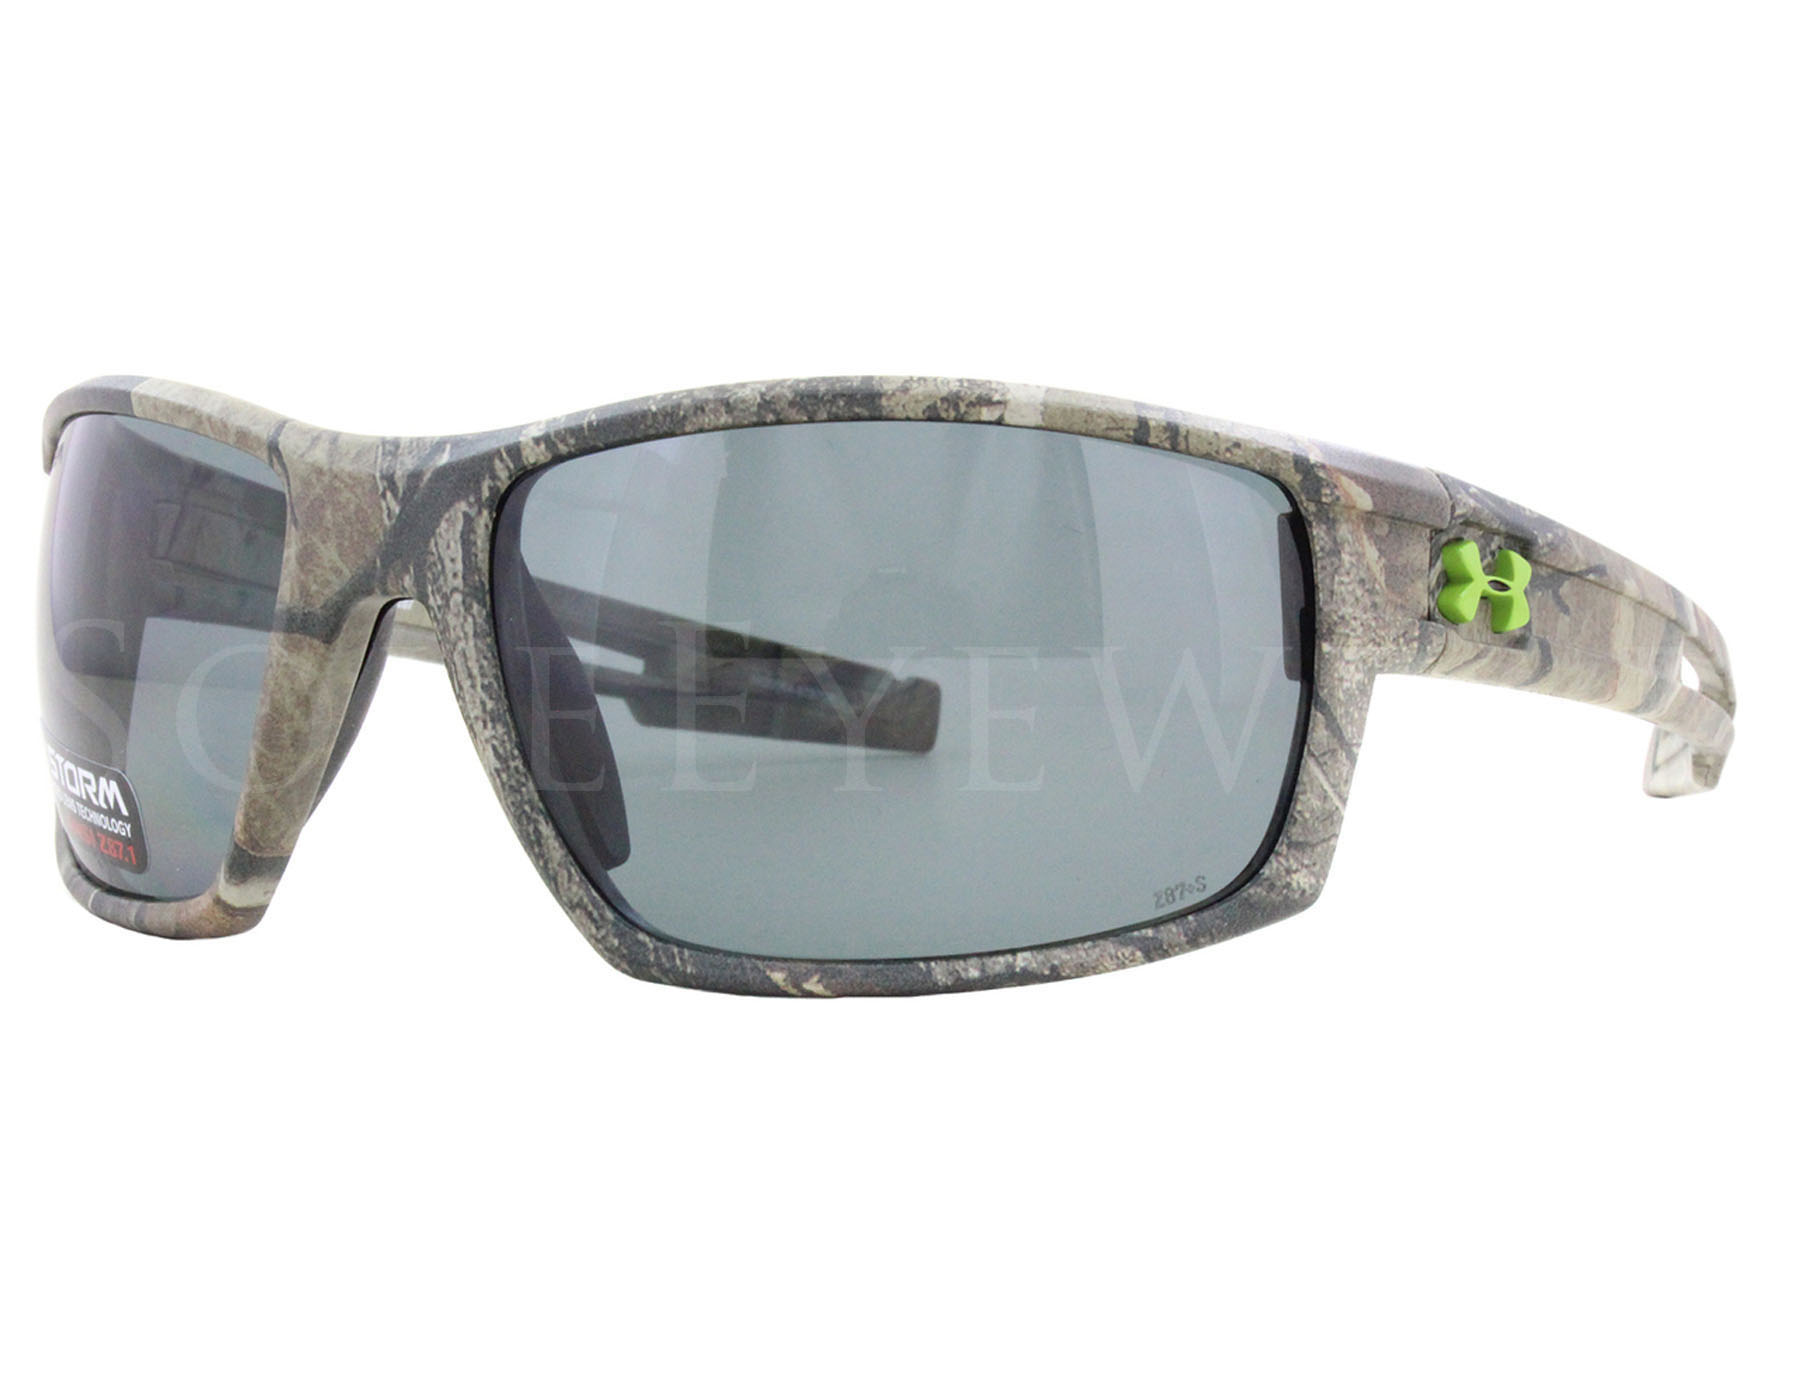 e52bc6e452 Details about NEW Under Armour Captain Realtree Storm Gray Polarized 8630064 -878708 Sunglasses